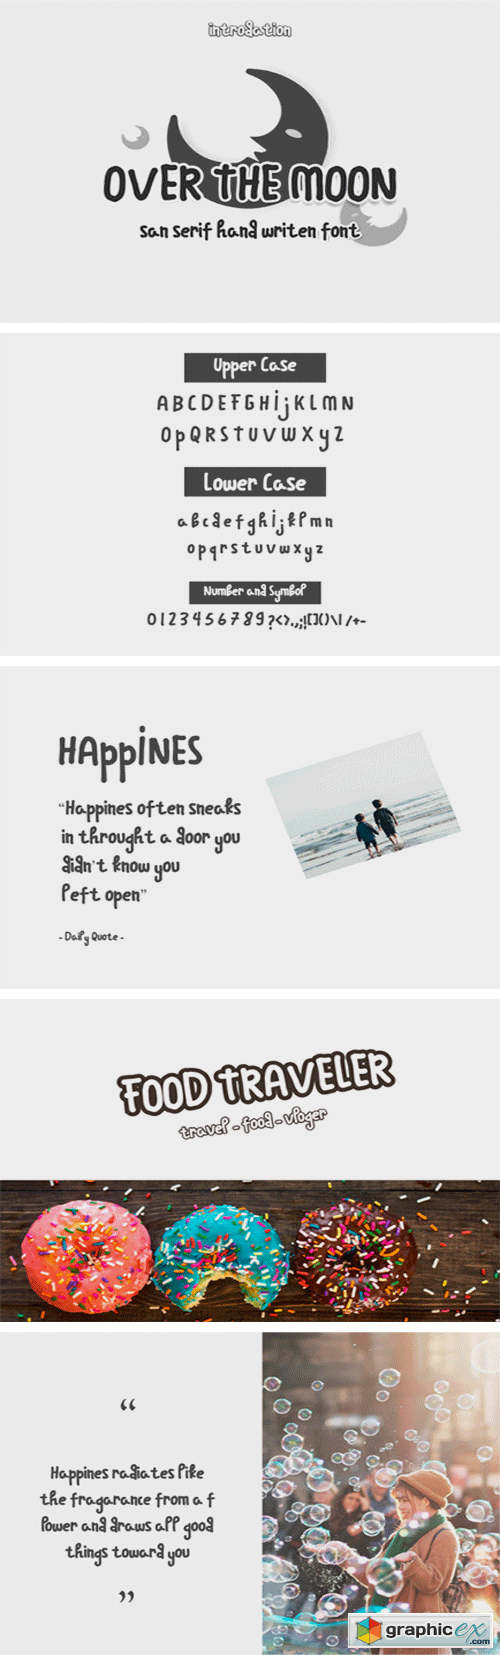 Over the Moon Font